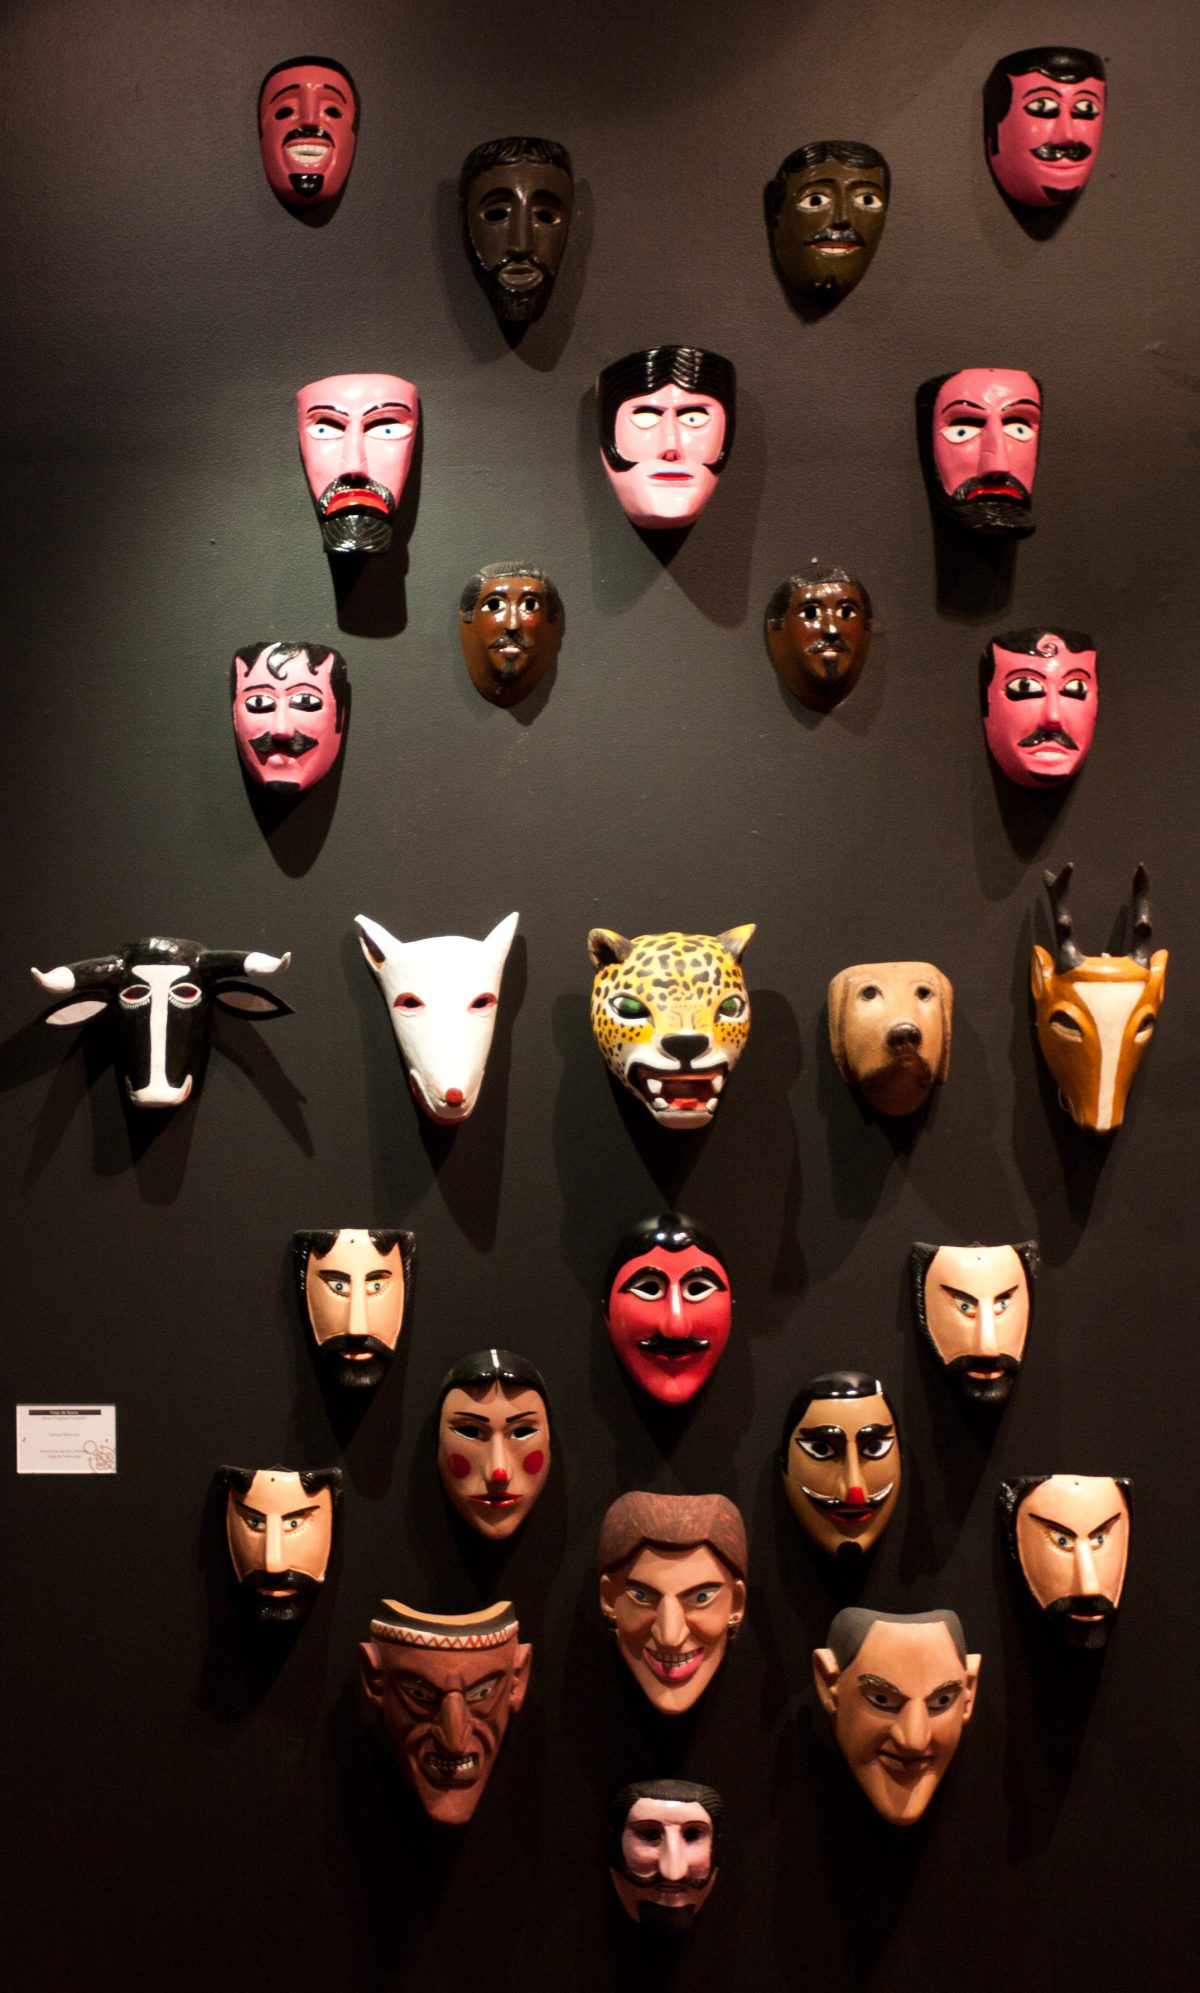 Masks - At museo de artes popular, museum, mask